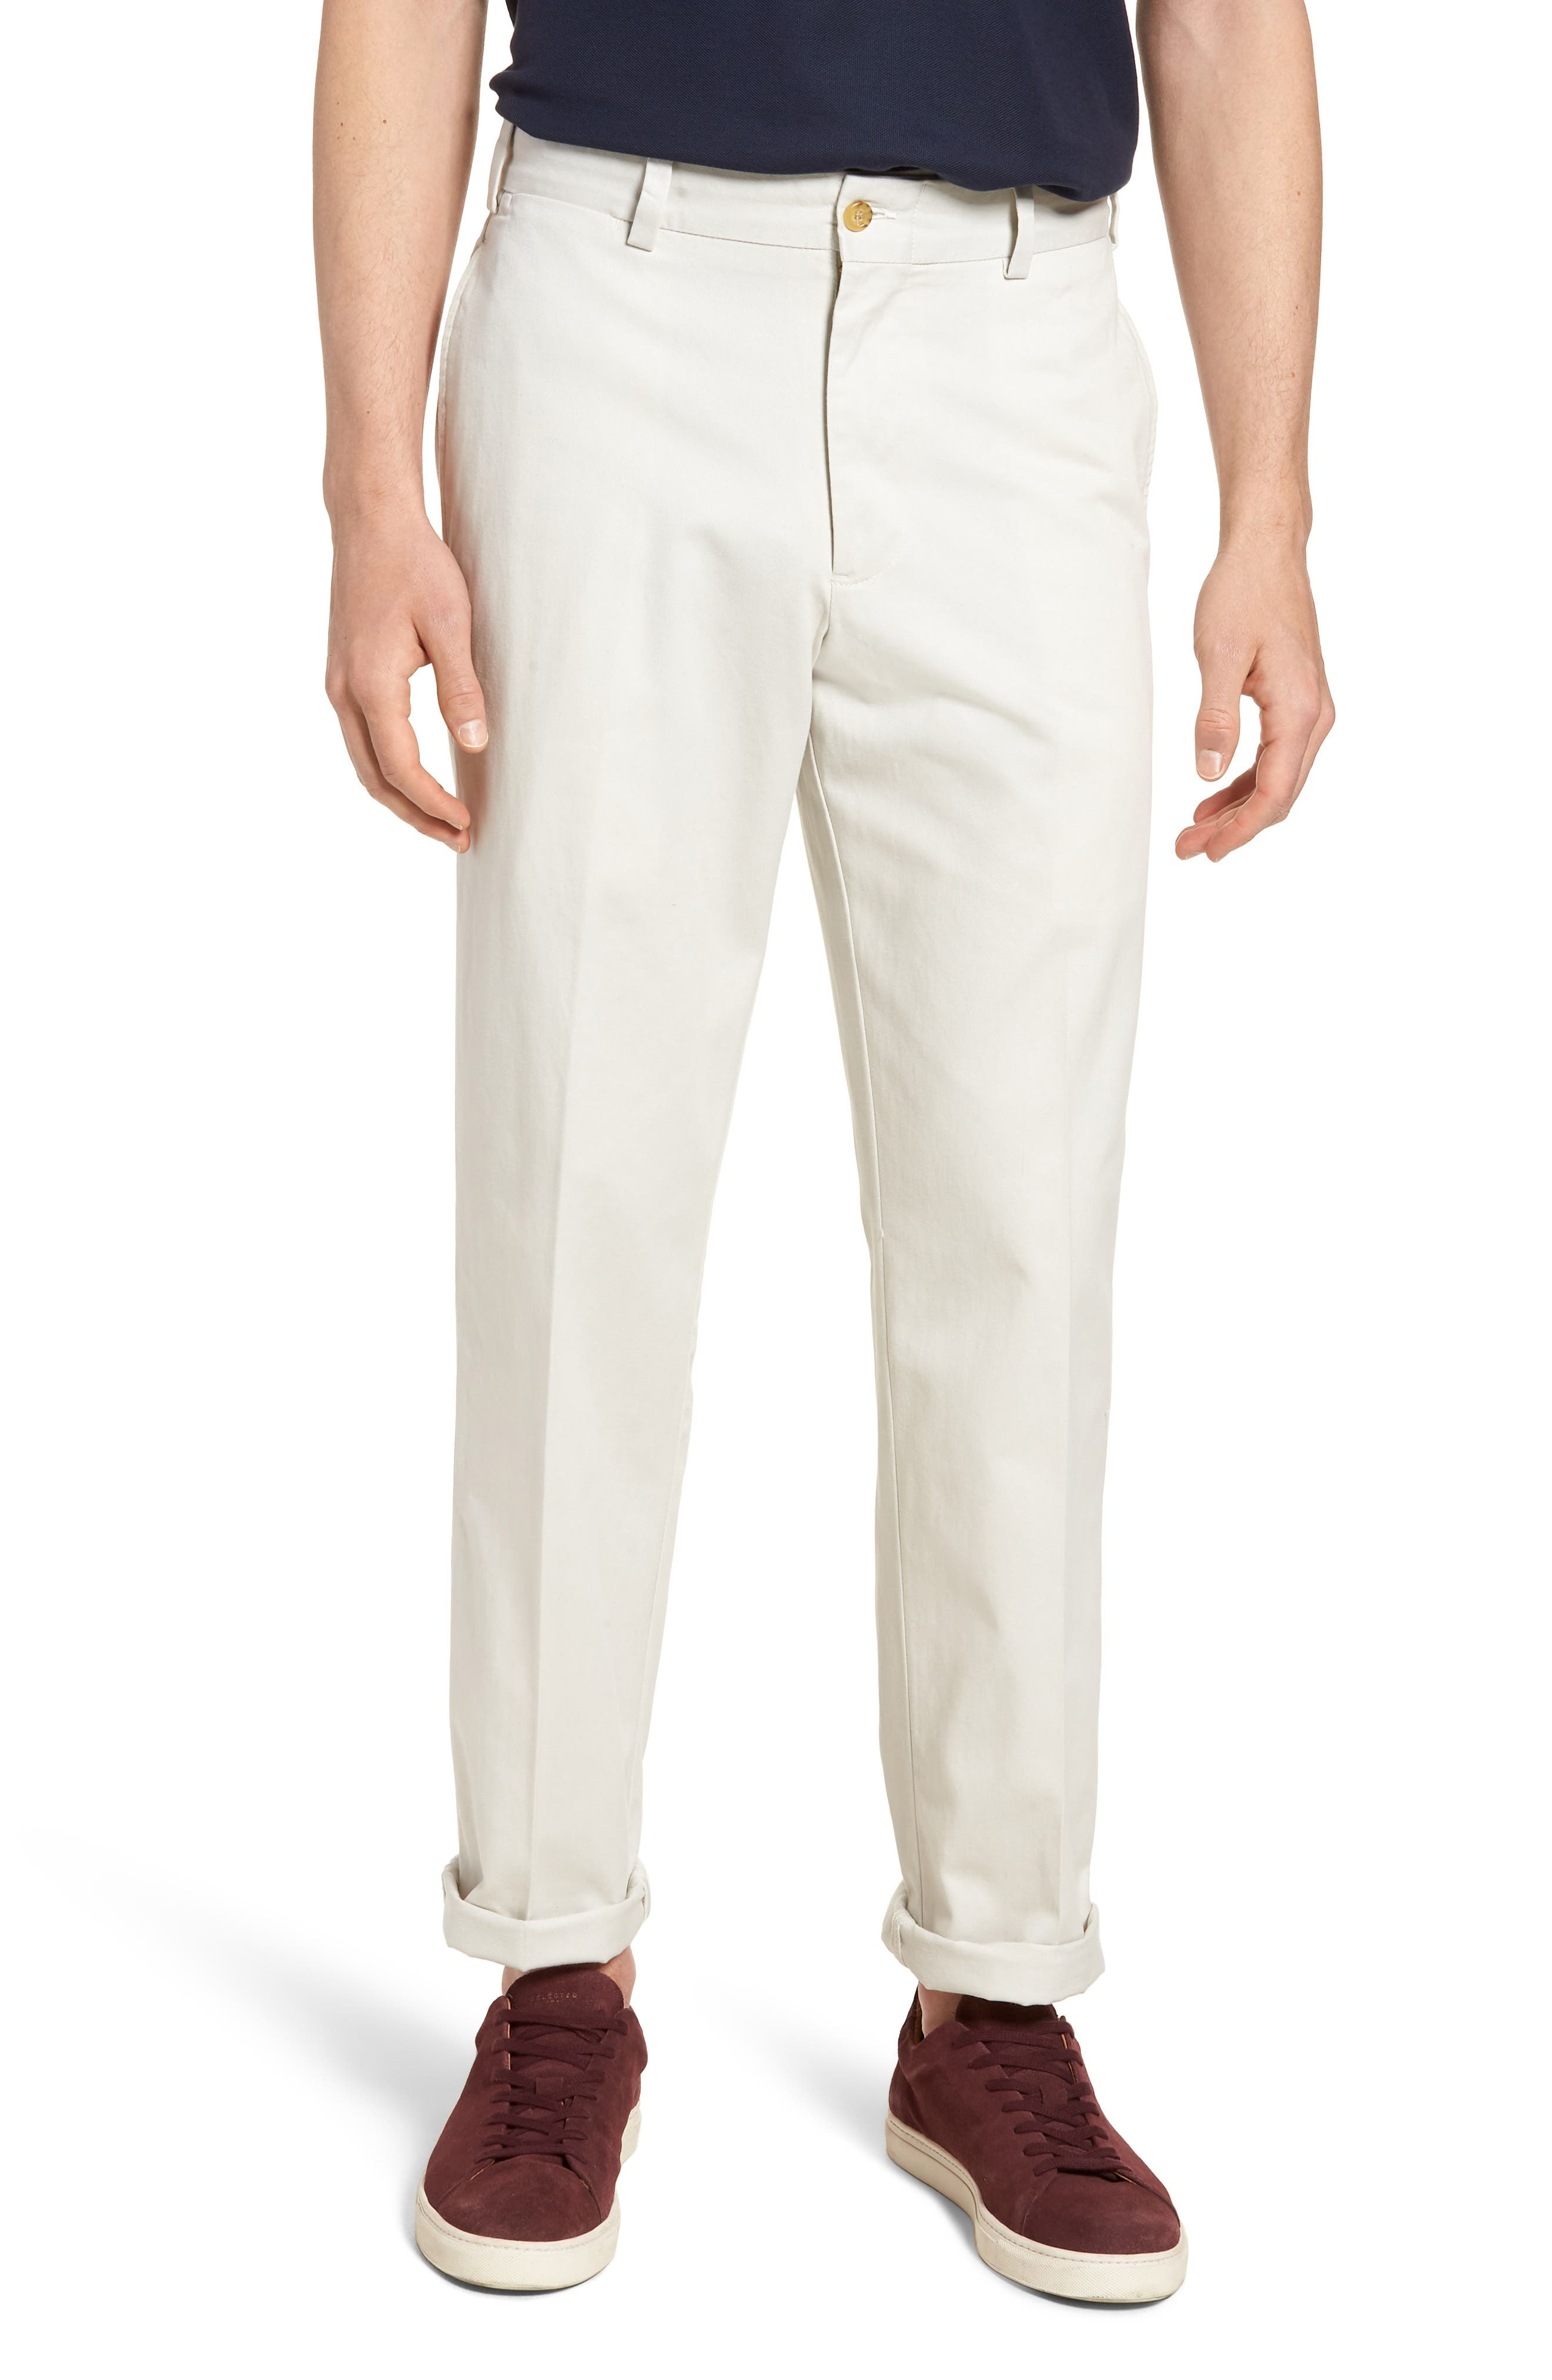 M2 Classic Fit Vintage Twill Flat Front Pants,                             Main thumbnail 1, color,                             Stone